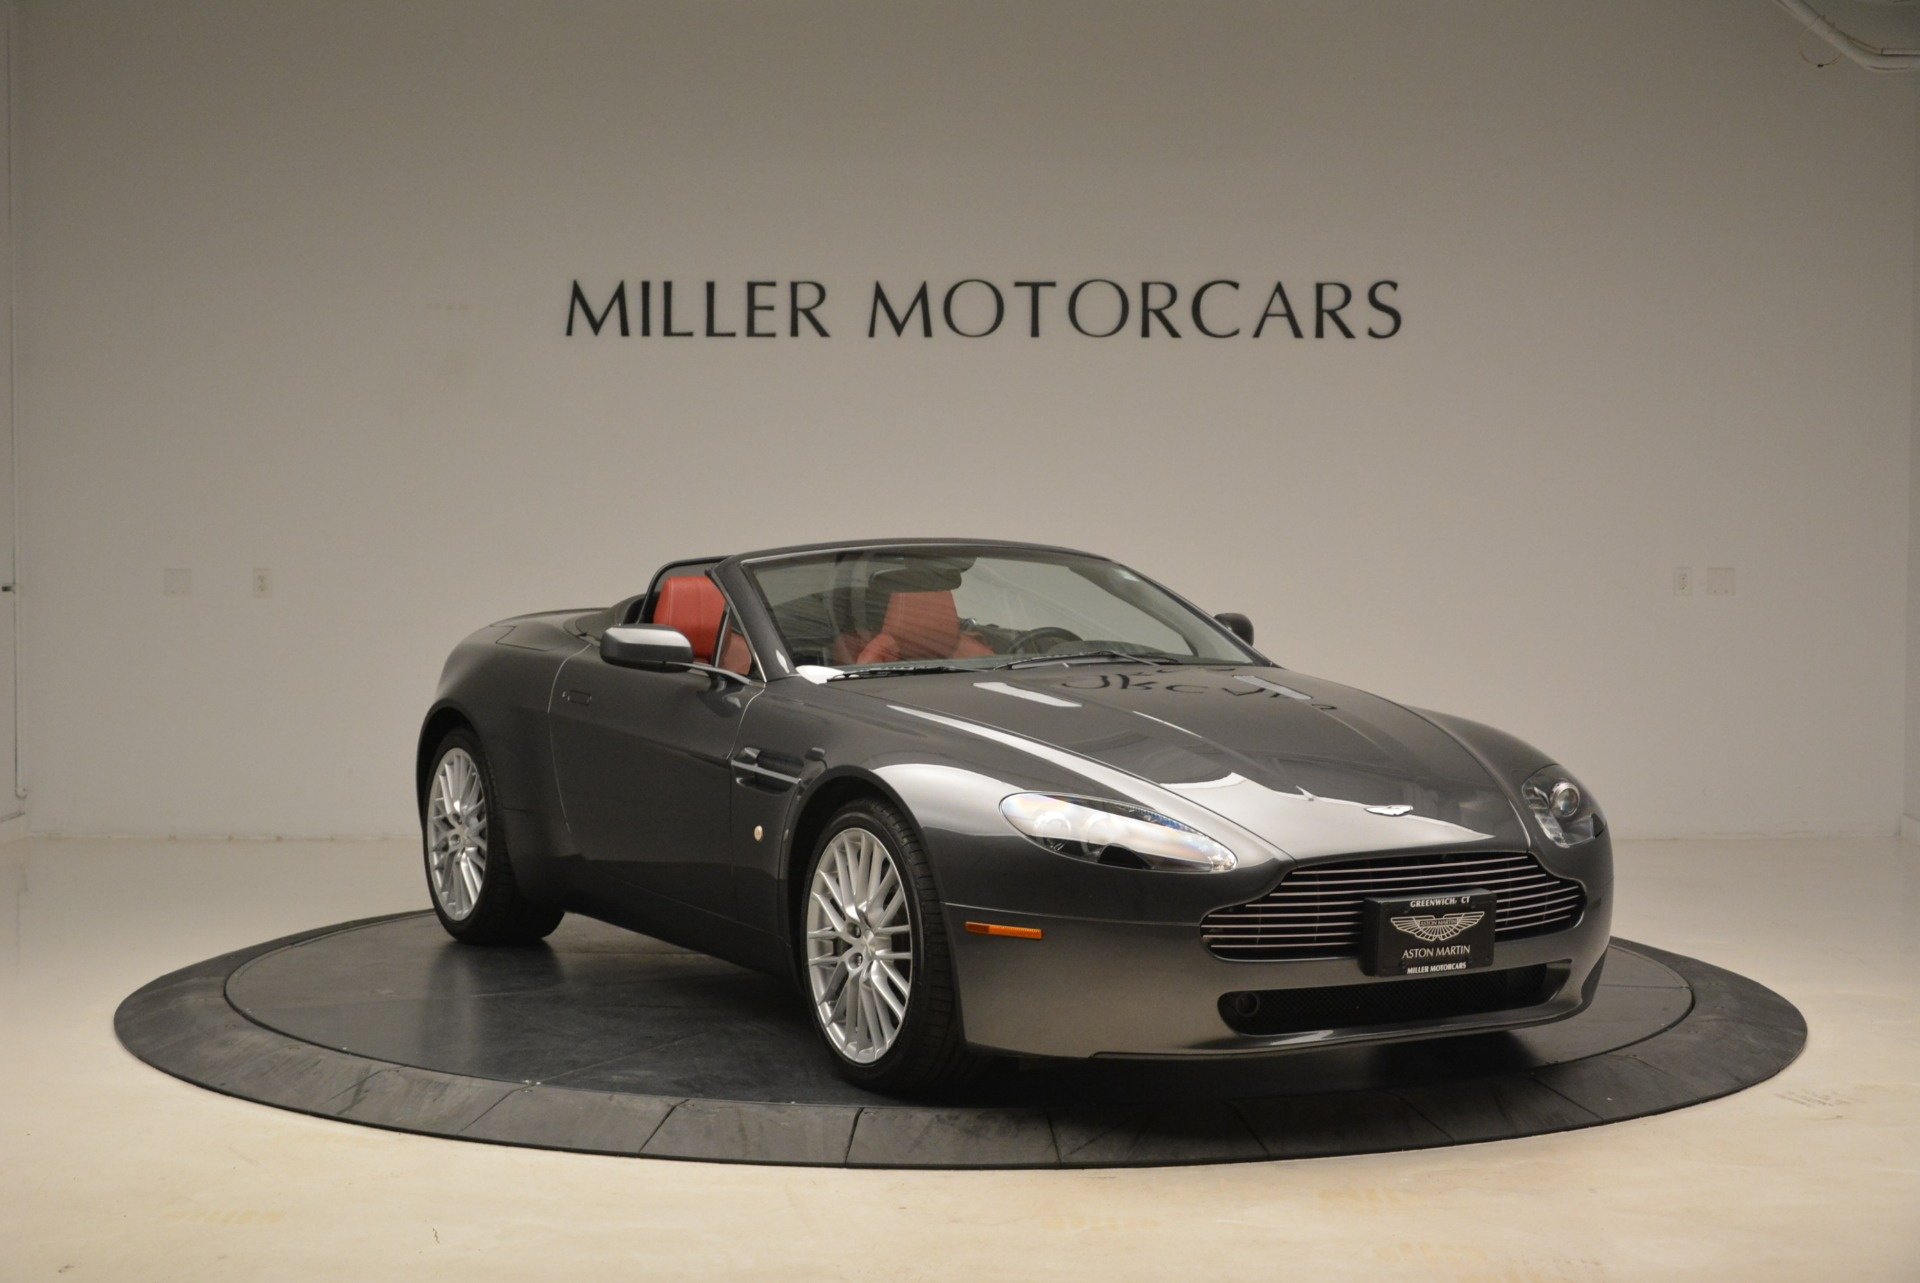 Used 2009 Aston Martin V8 Vantage Roadster For Sale In Westport, CT 2123_p11